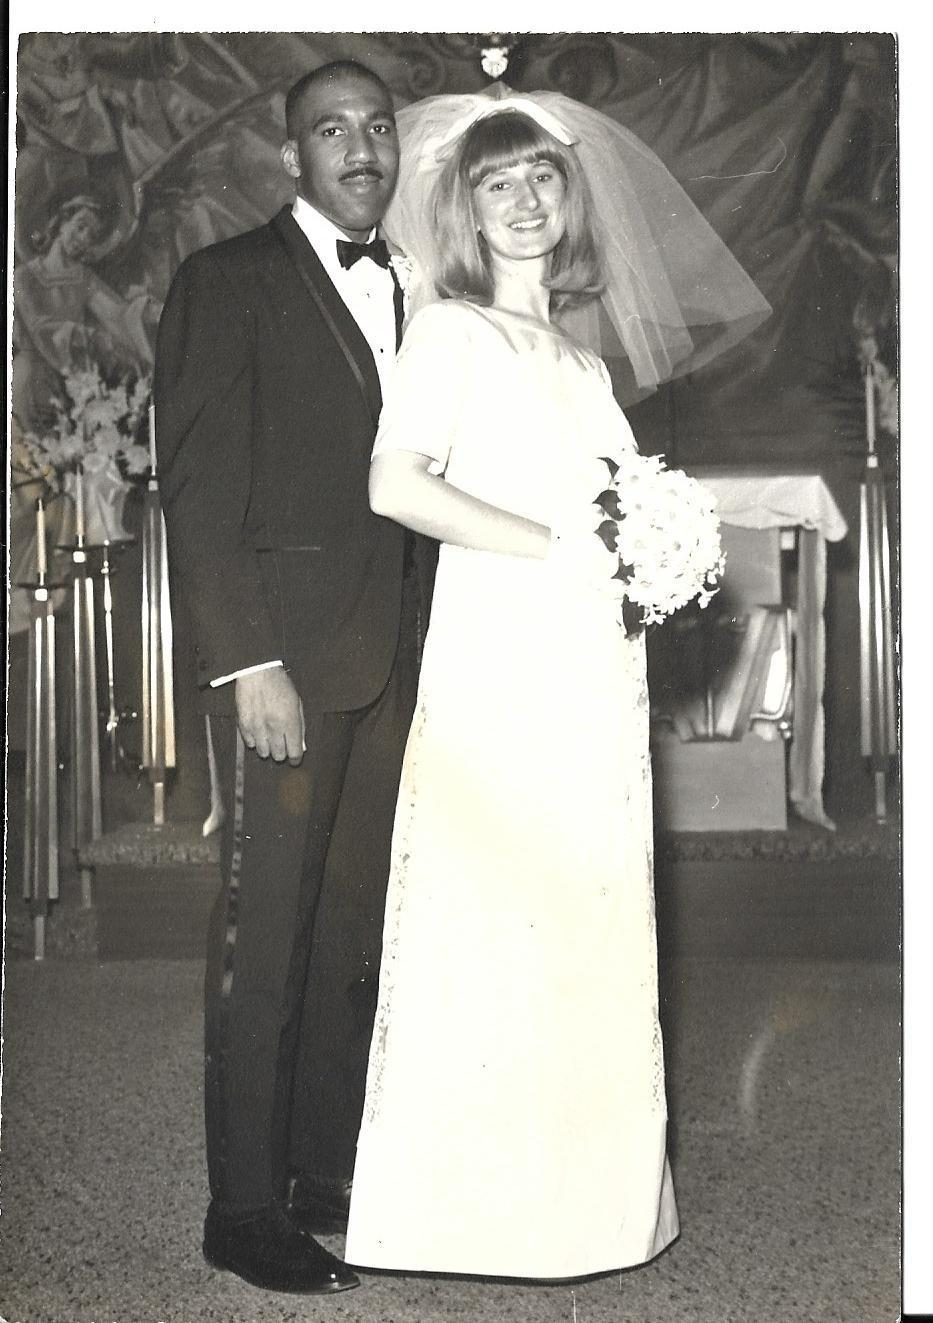 Charles and Janice Tyler on their wedding day.